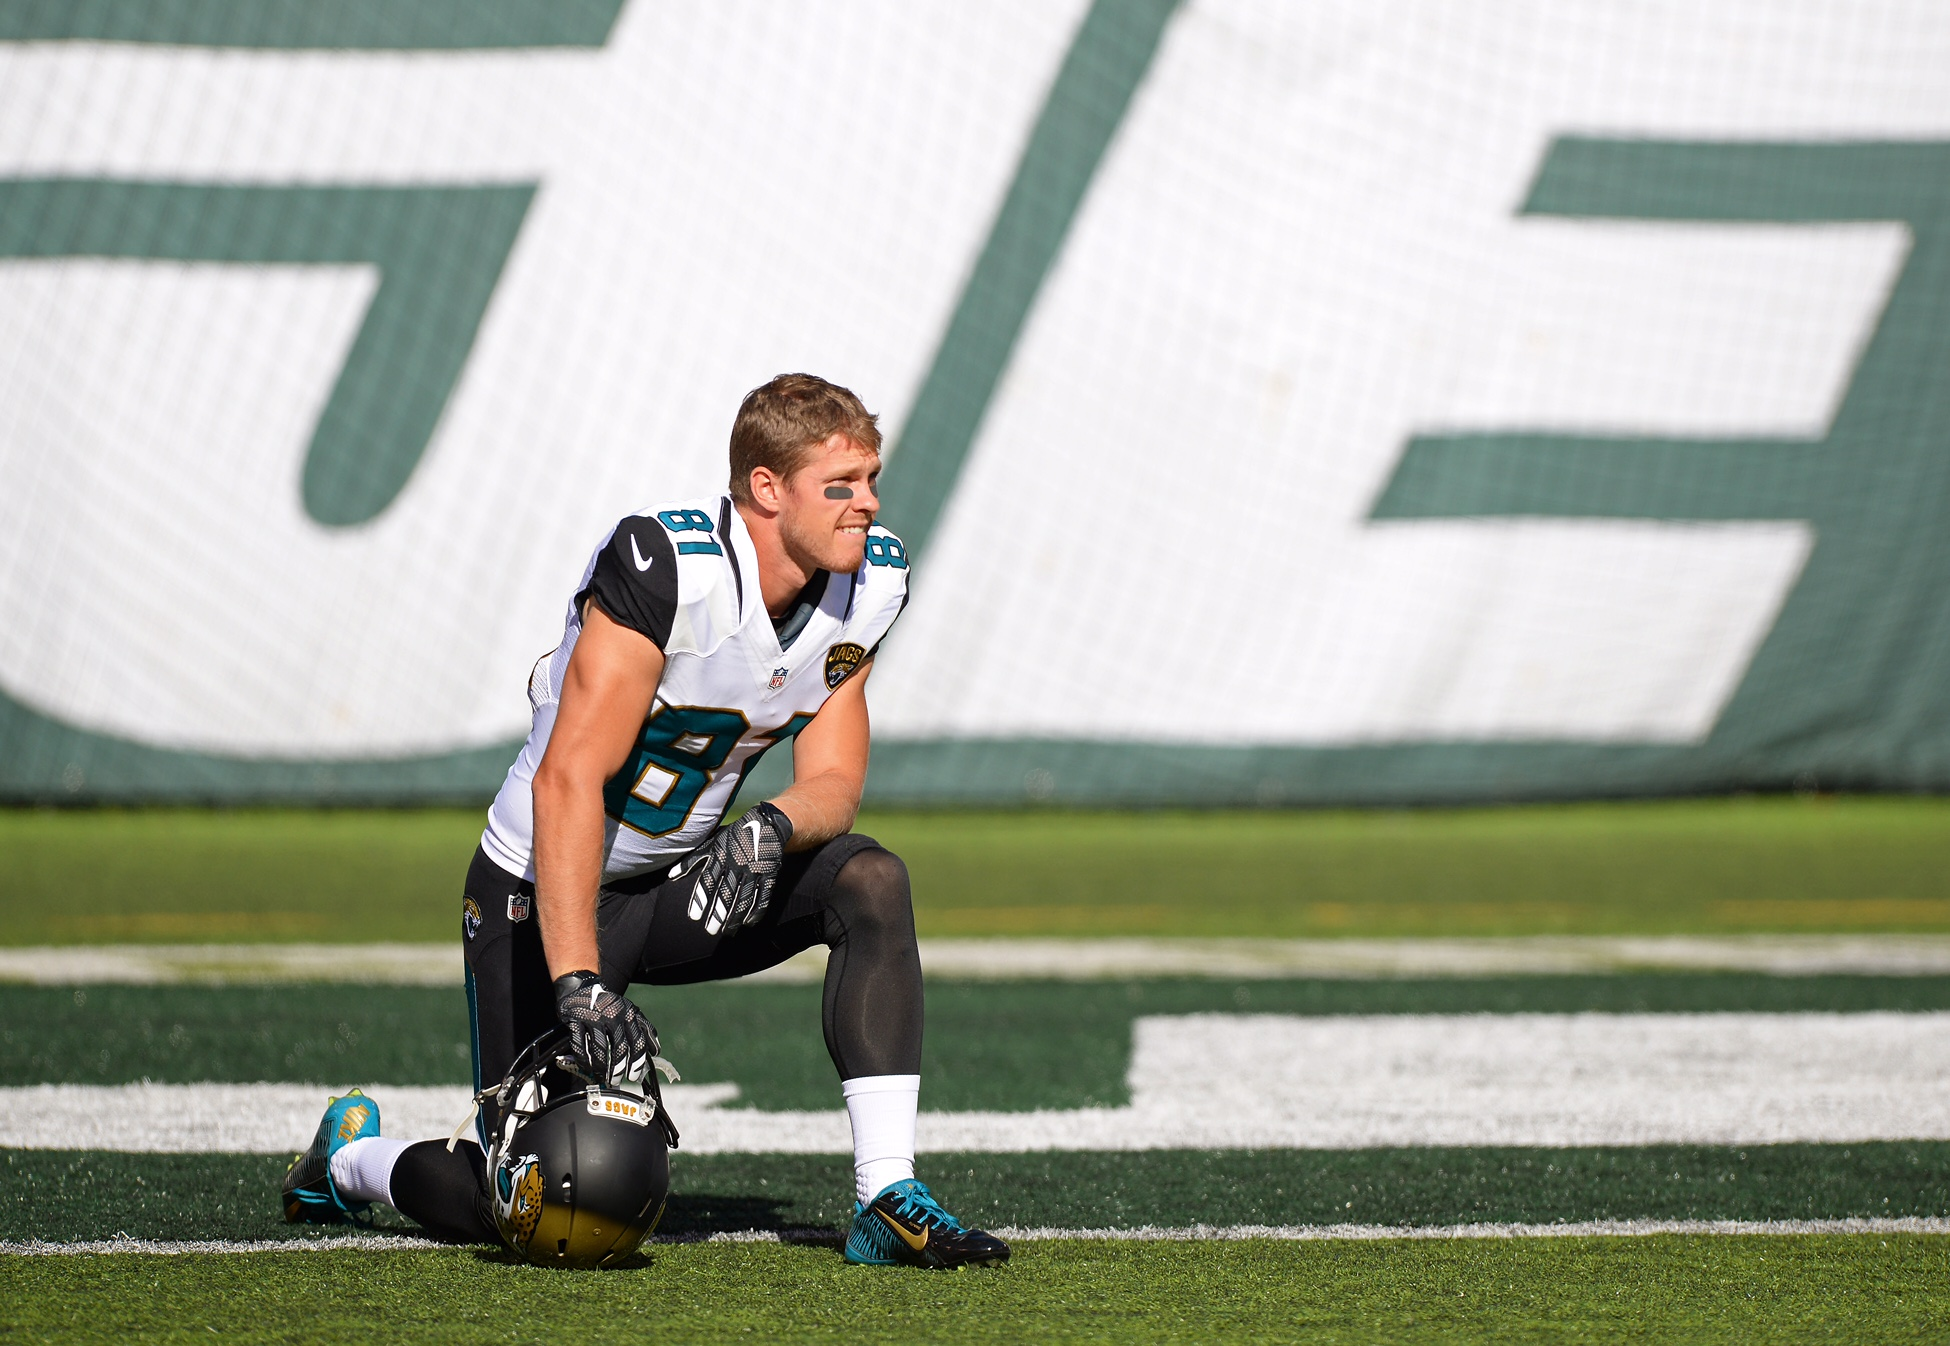 A day in the life of… Bryan Walters, WR, Jacksonville Jaguars.